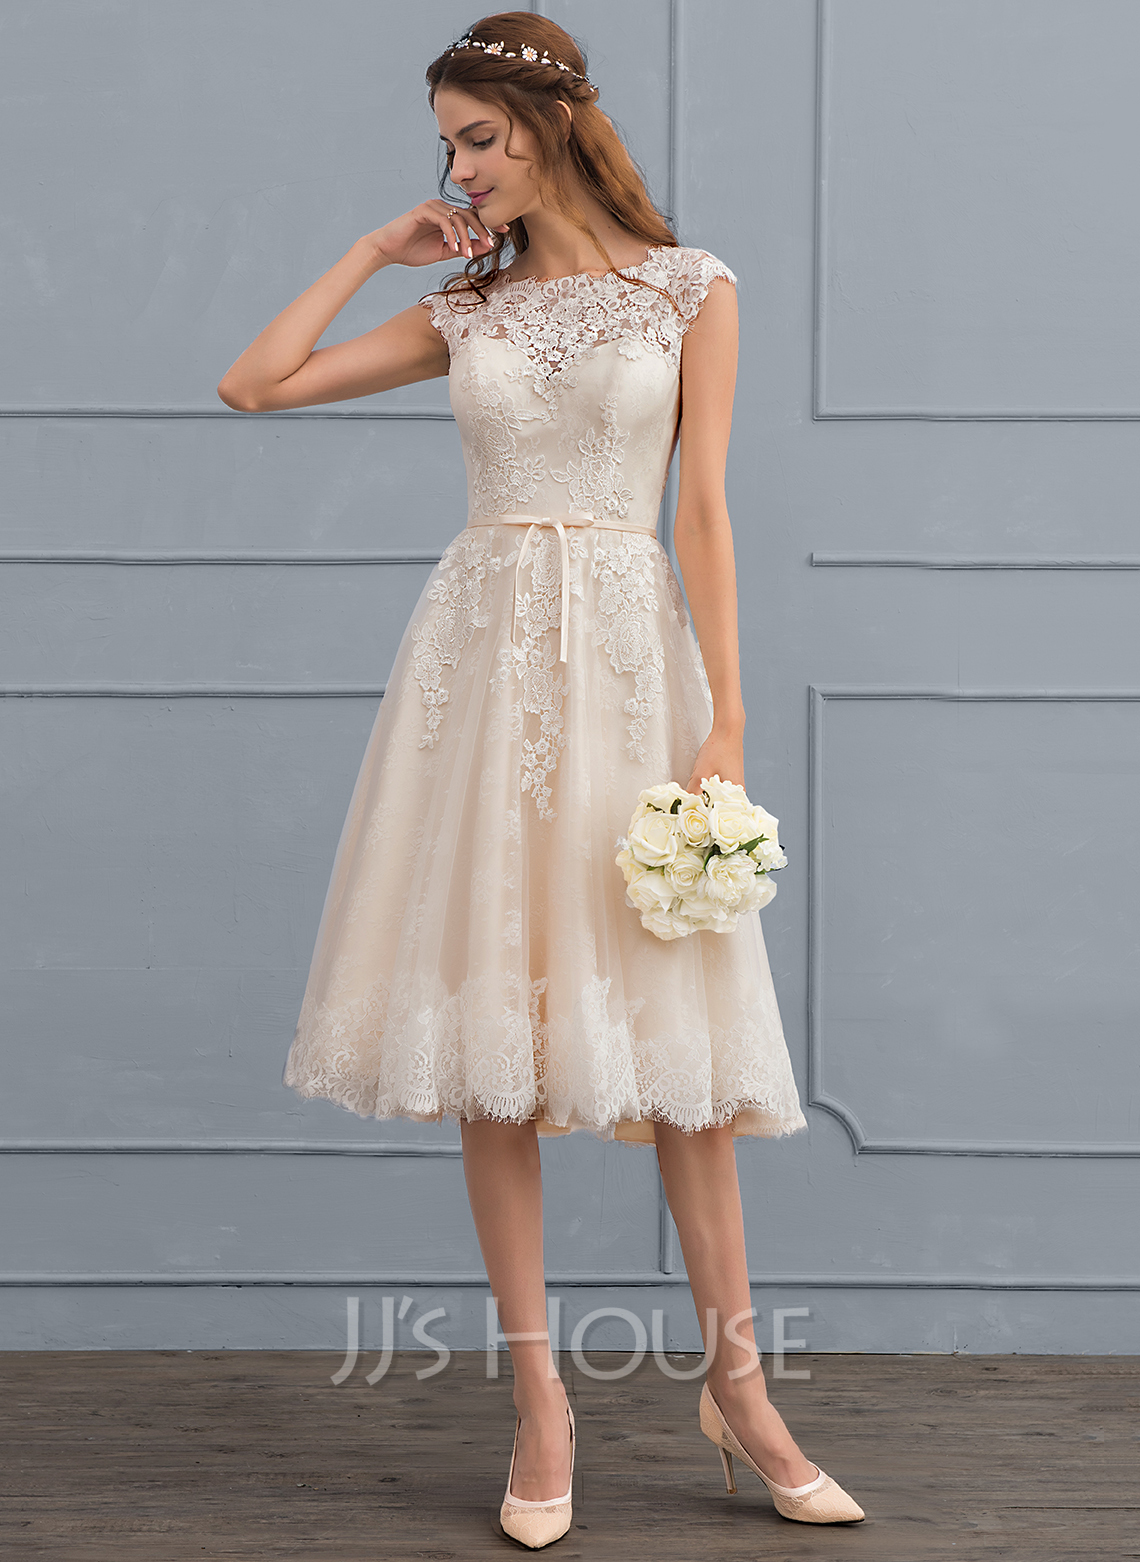 Dallas wedding gown rental jjshouse a lineprincess scoop neck knee length tulle lace wedding dress with bow junglespirit Choice Image